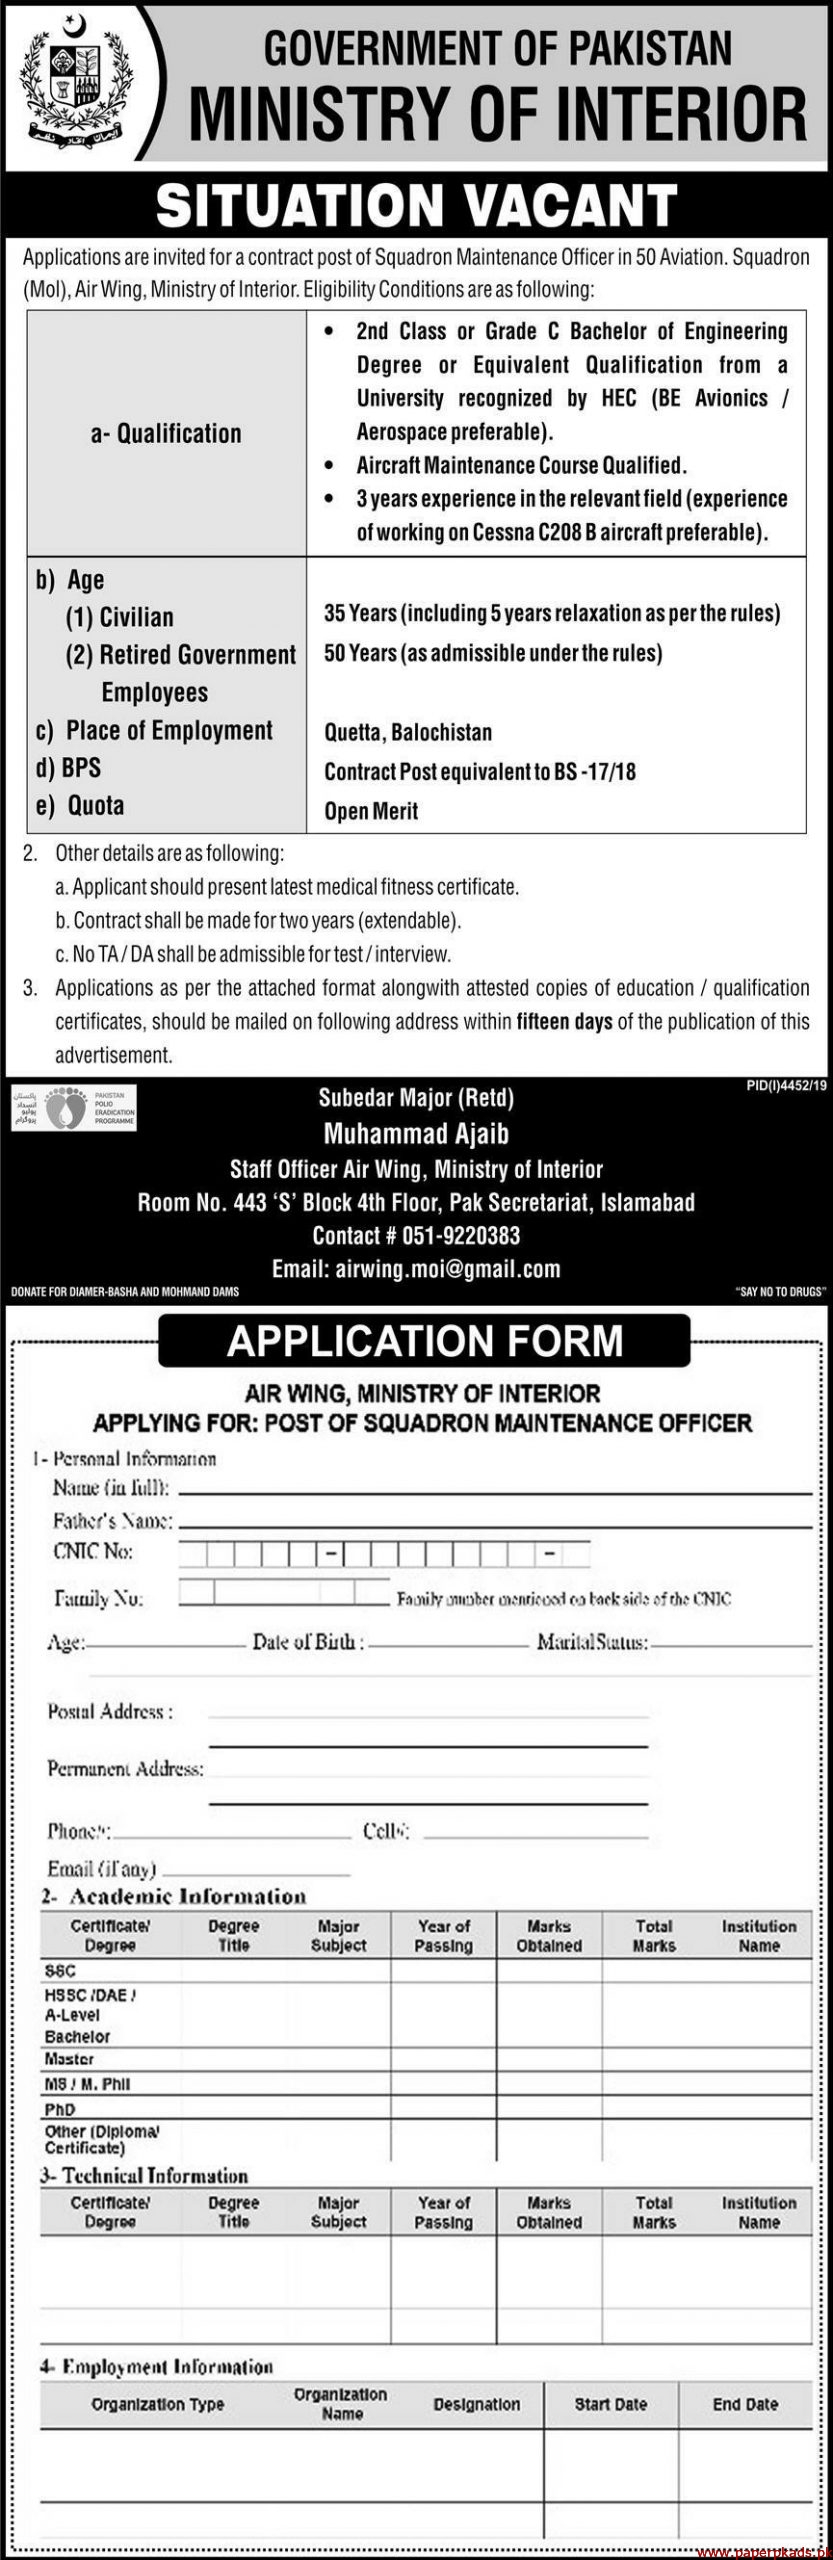 Government of Pakistan Ministry of Interior Jobs 2020 Latest